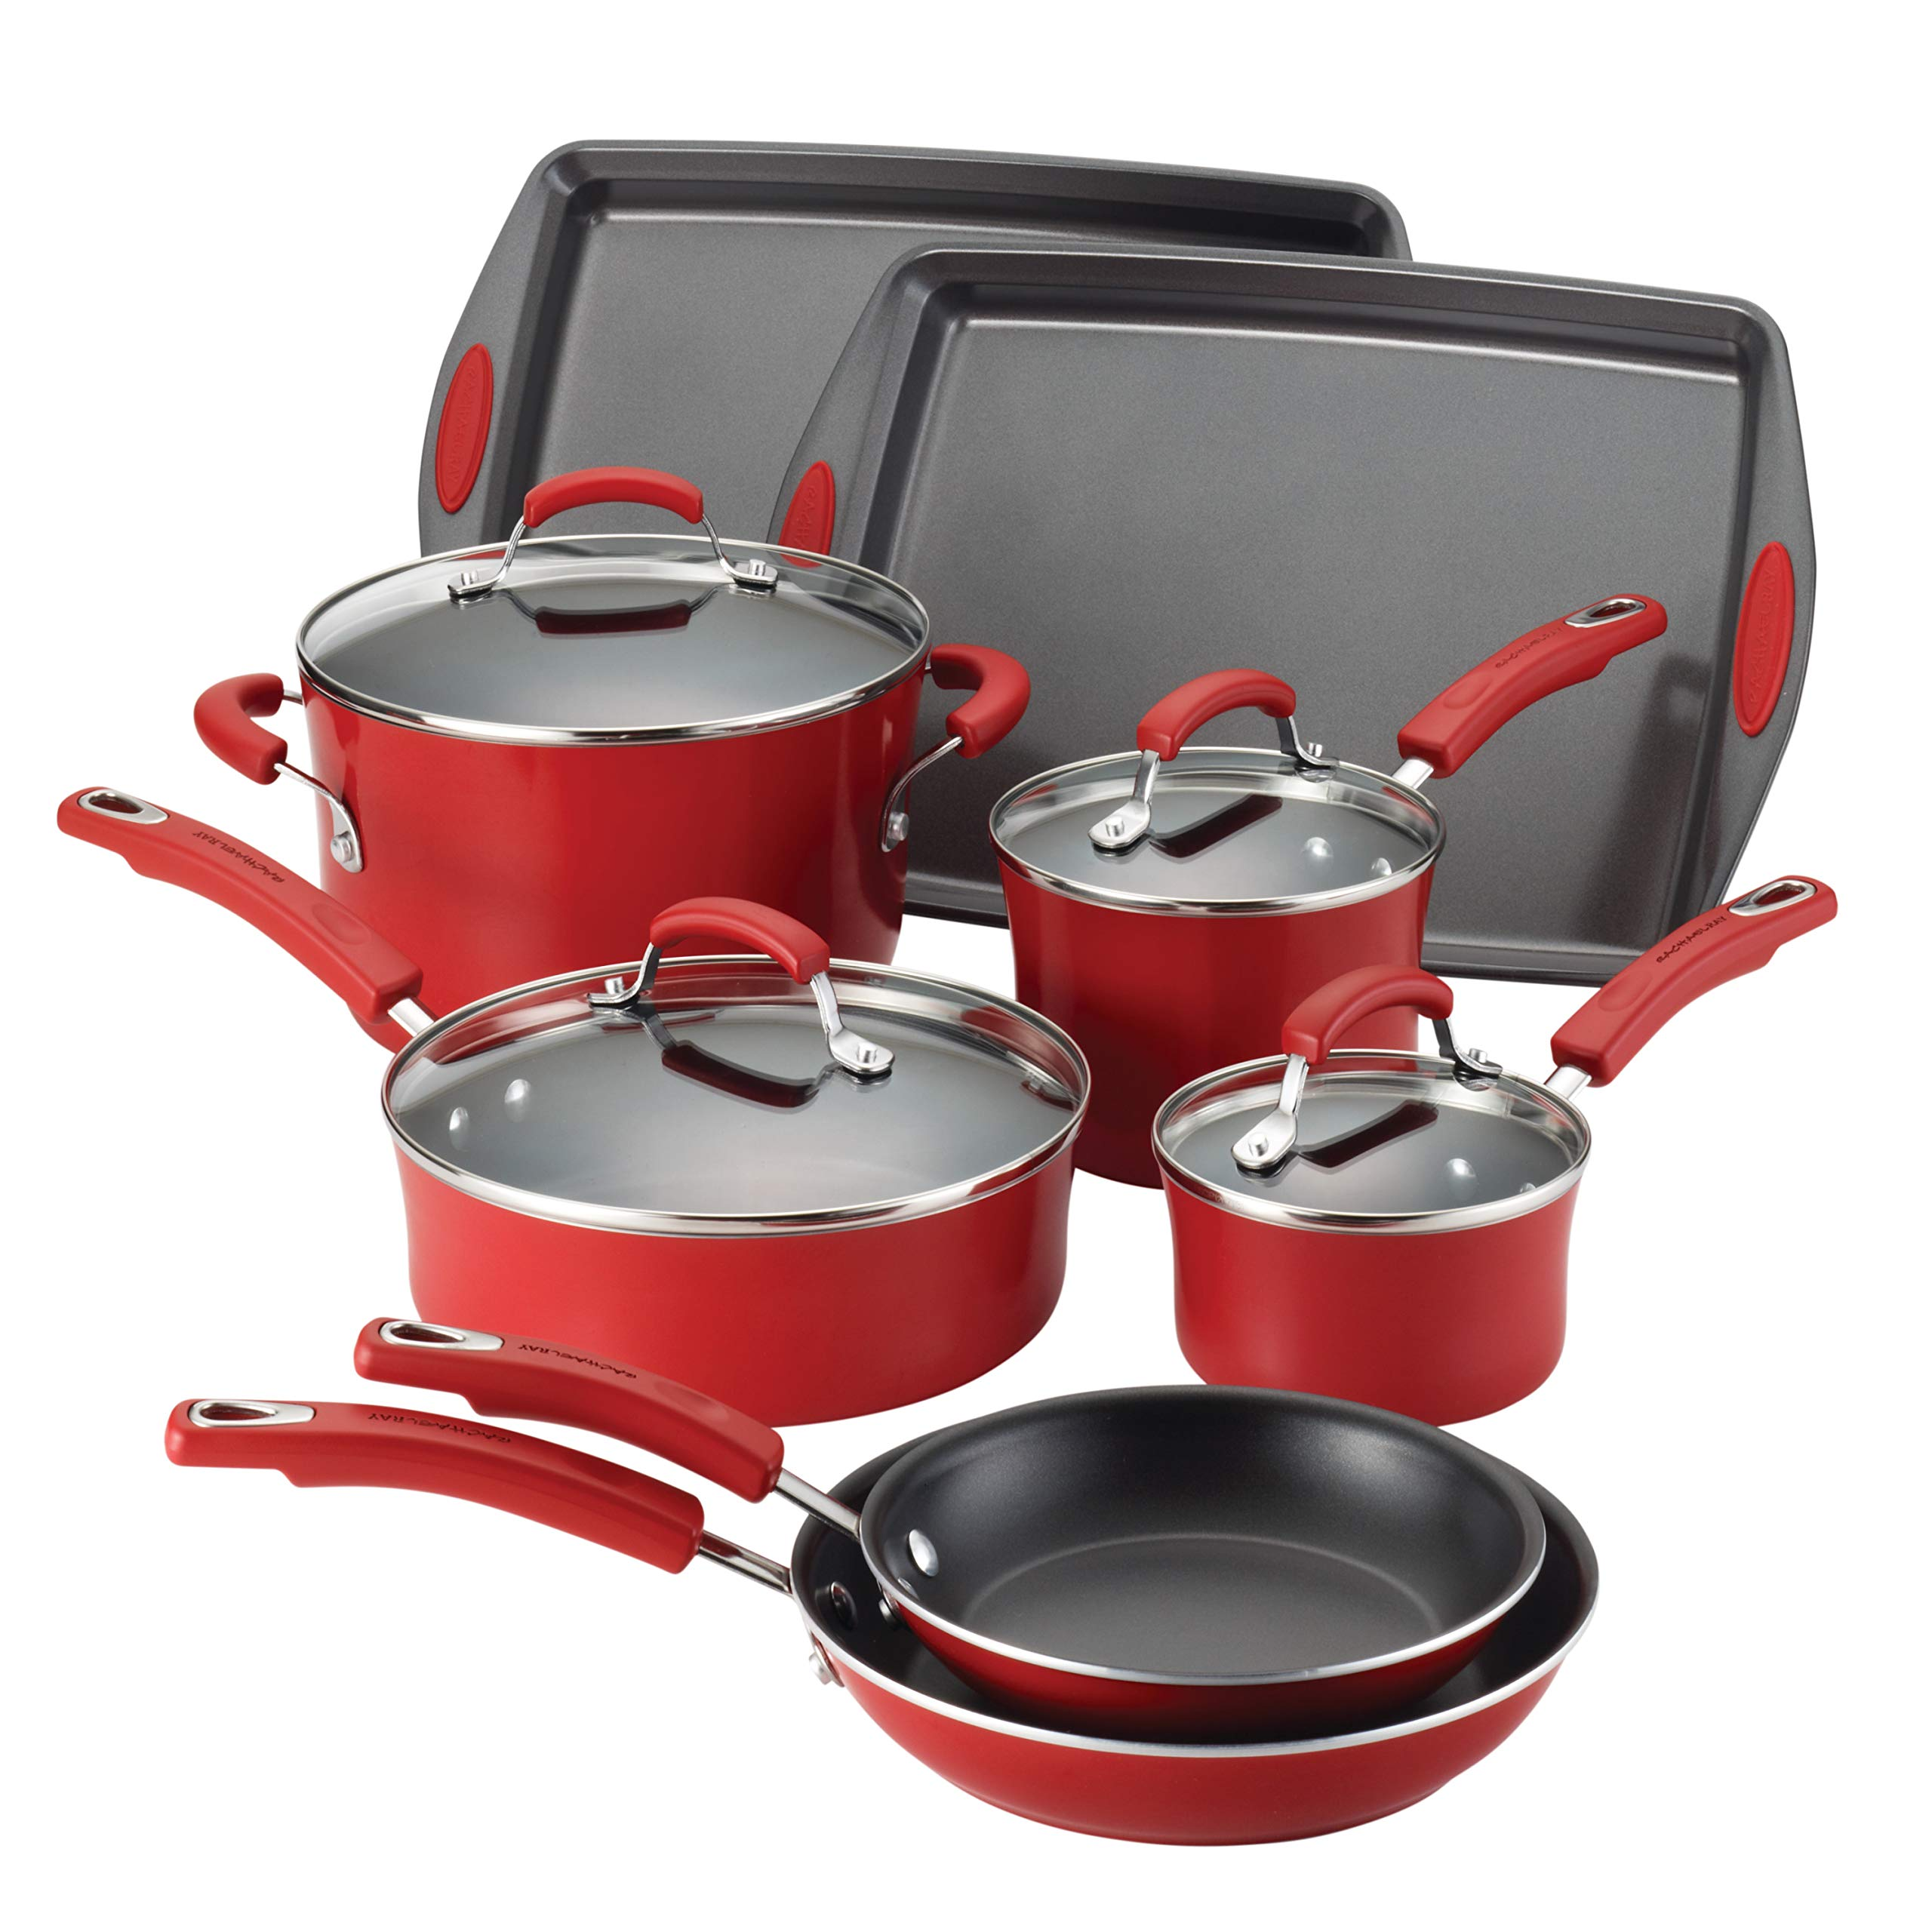 Rachael Ray Classic Brights Porcelain 4-Piece Cookware Set with Bakeware,  Red Gradient